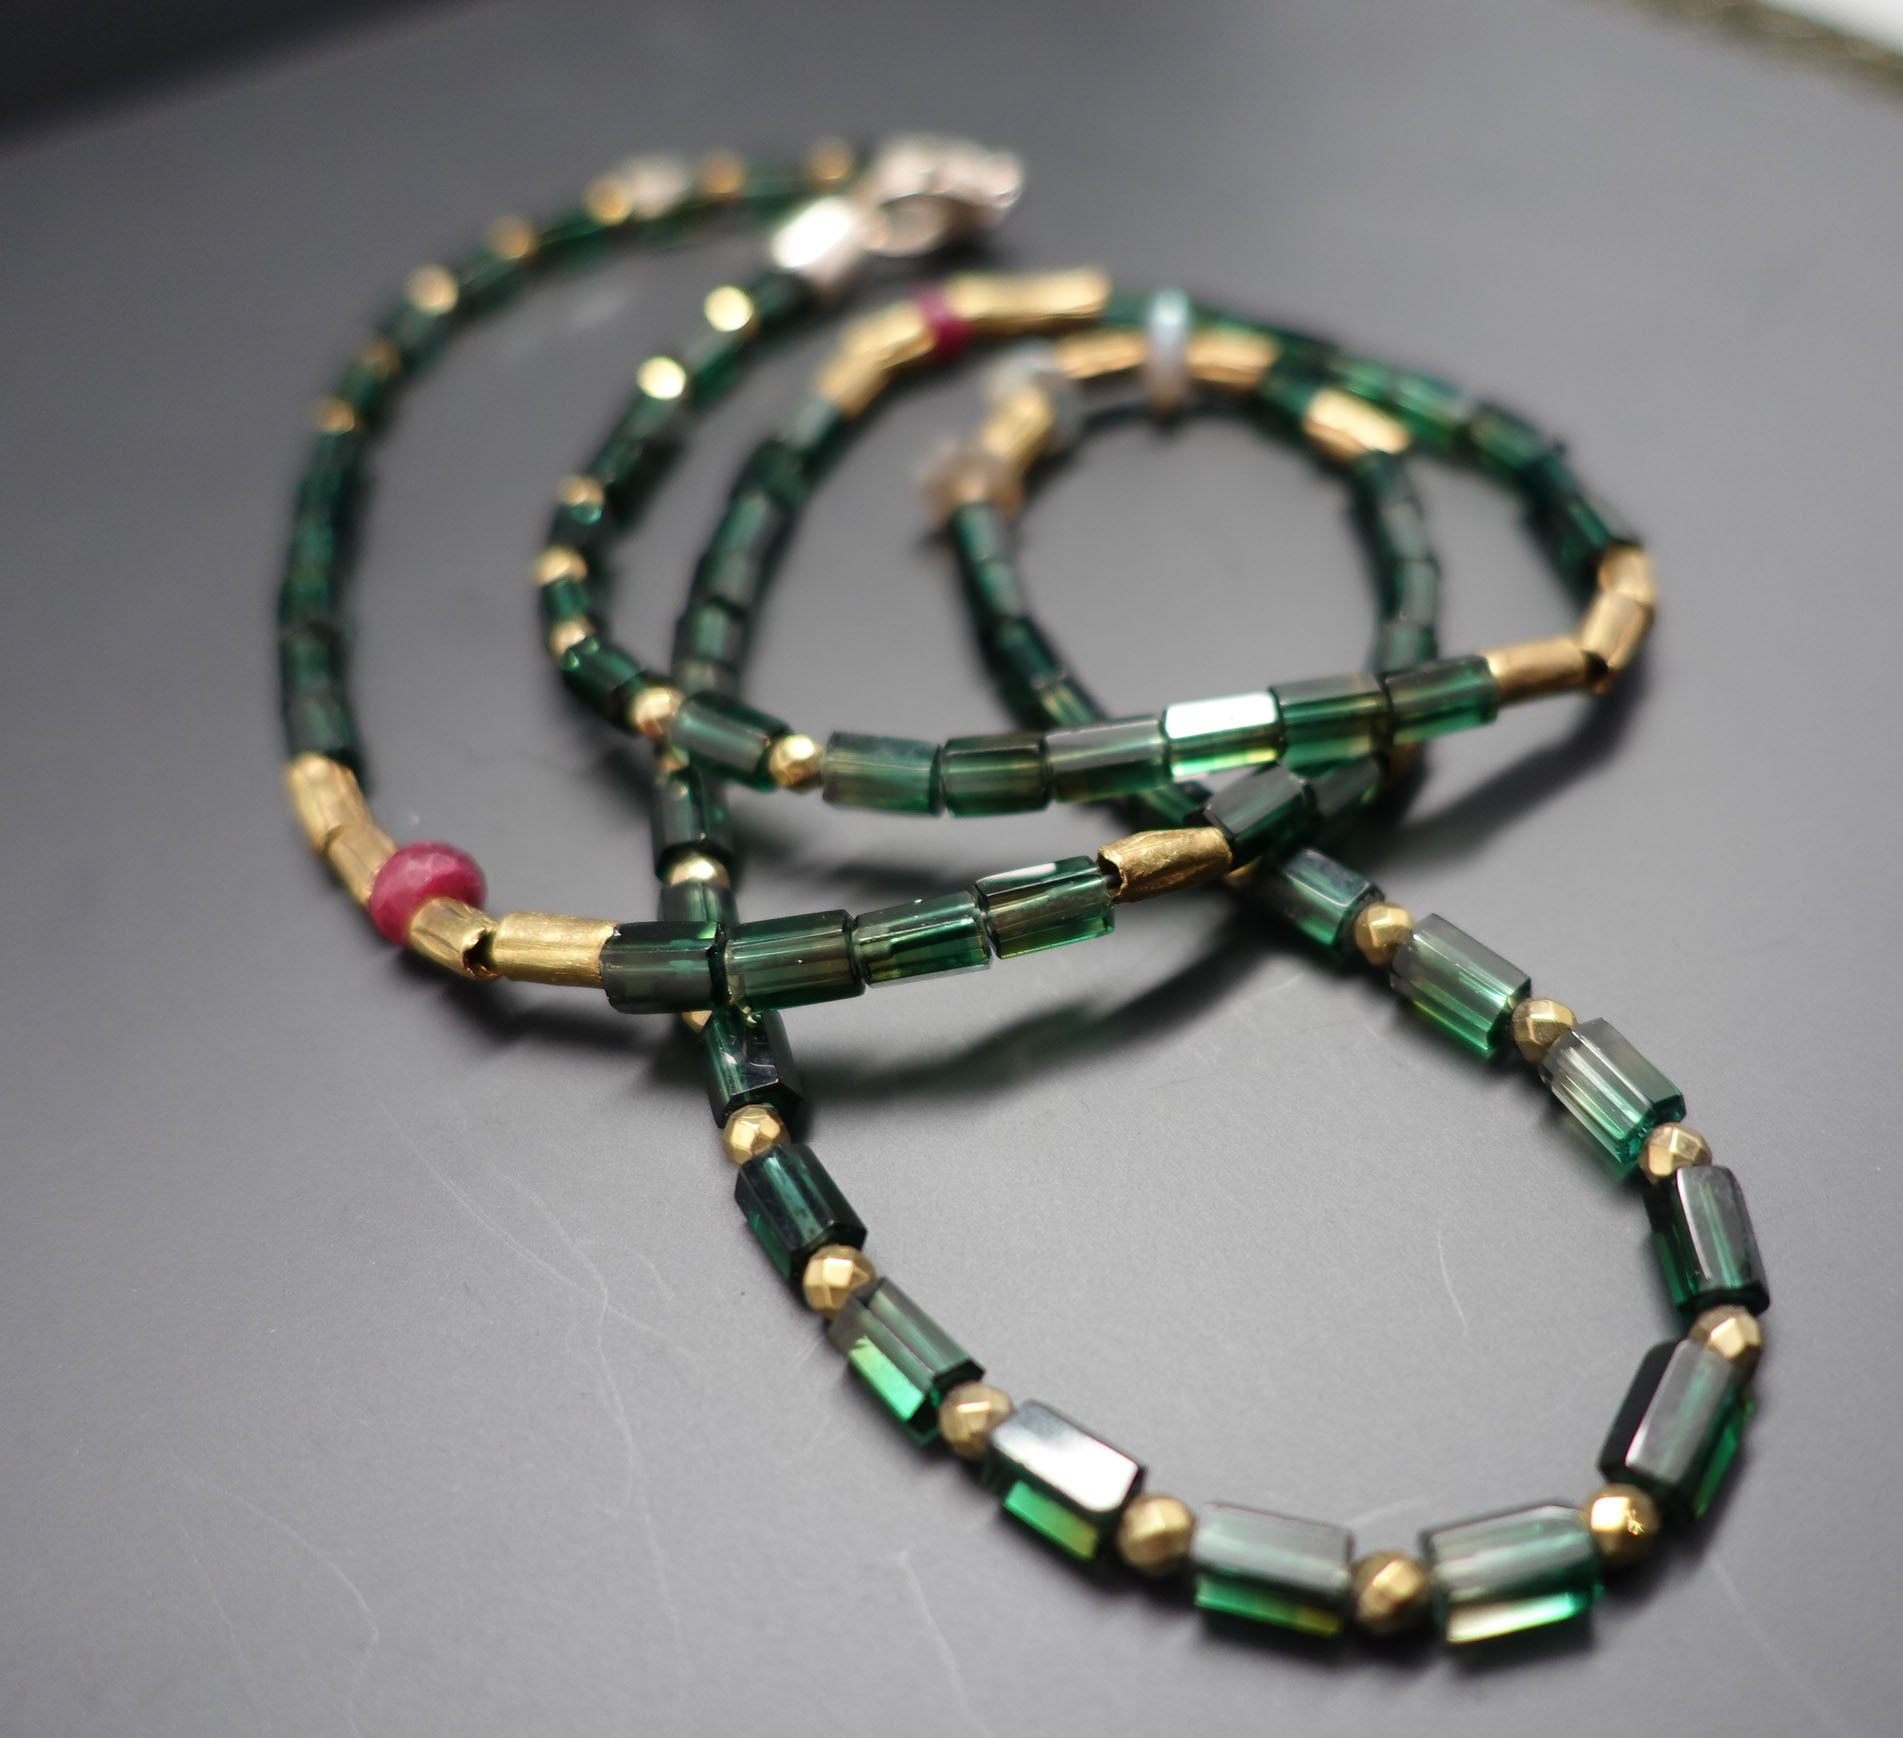 htm karat gold necklace yellow green onyx